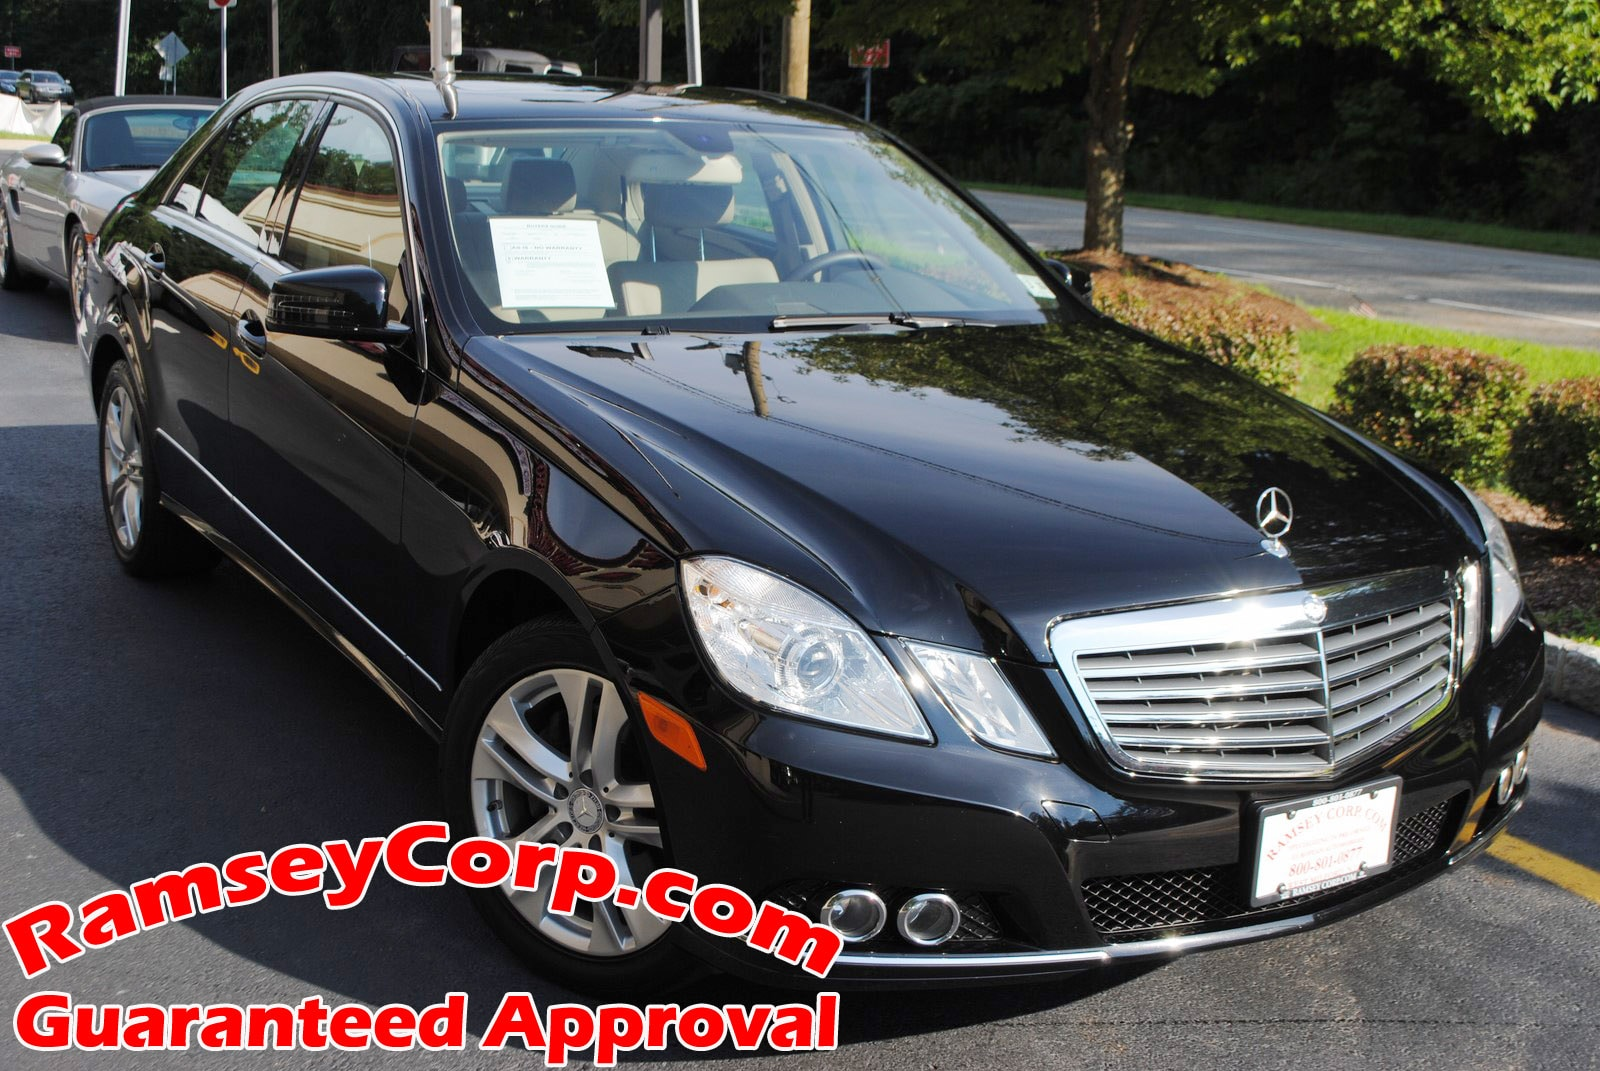 Used 2011 Mercedes-Benz E-Class For Sale at Ramsey Corp  | VIN:  WDDHF8HB6BA419222